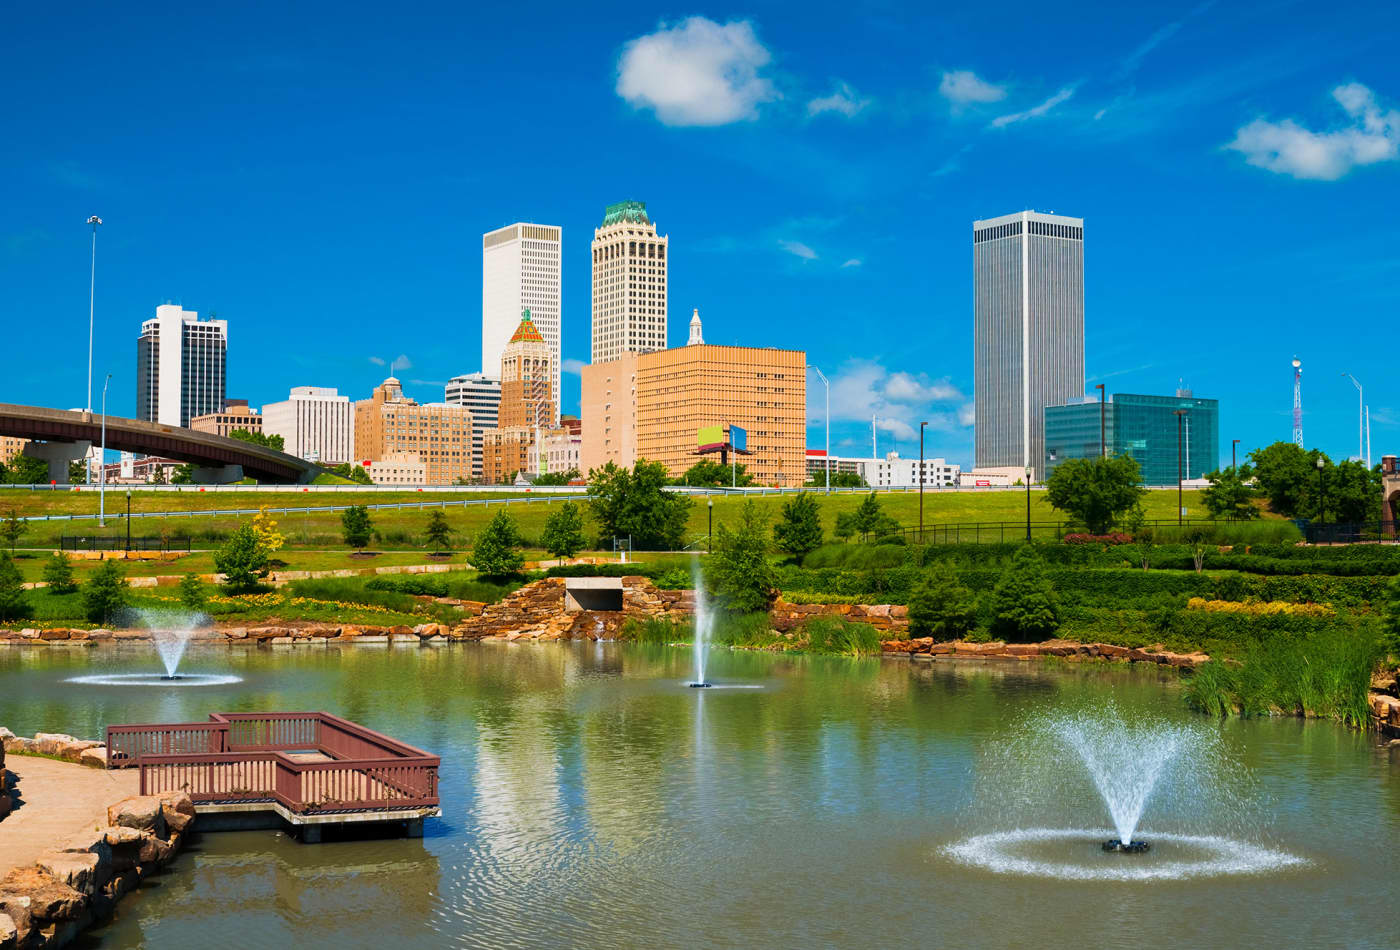 Tulsa, Oklahoma will pay you $10,000 to move there and work